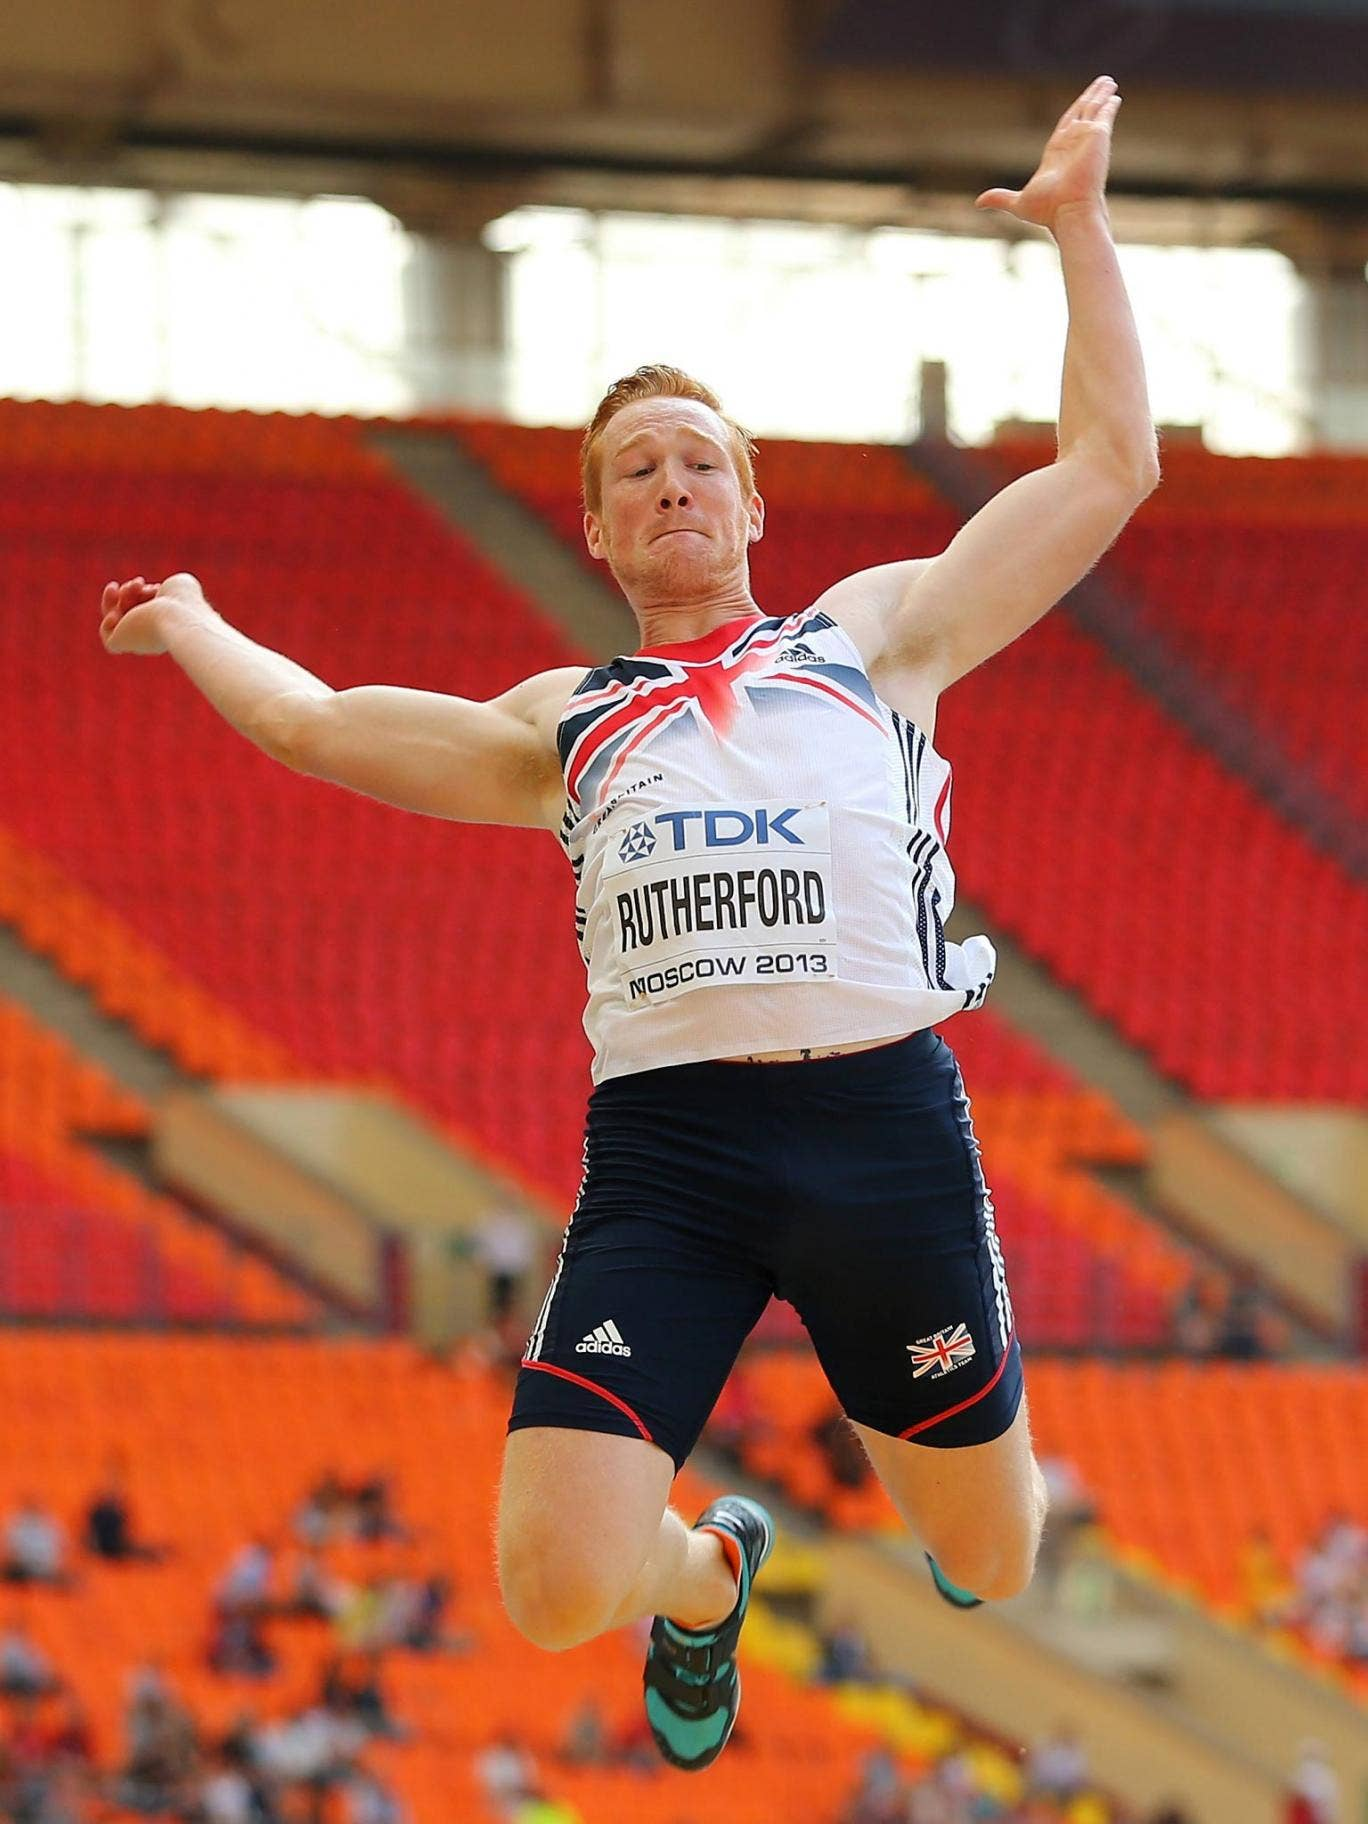 Greg Rutherford in action in Moscow